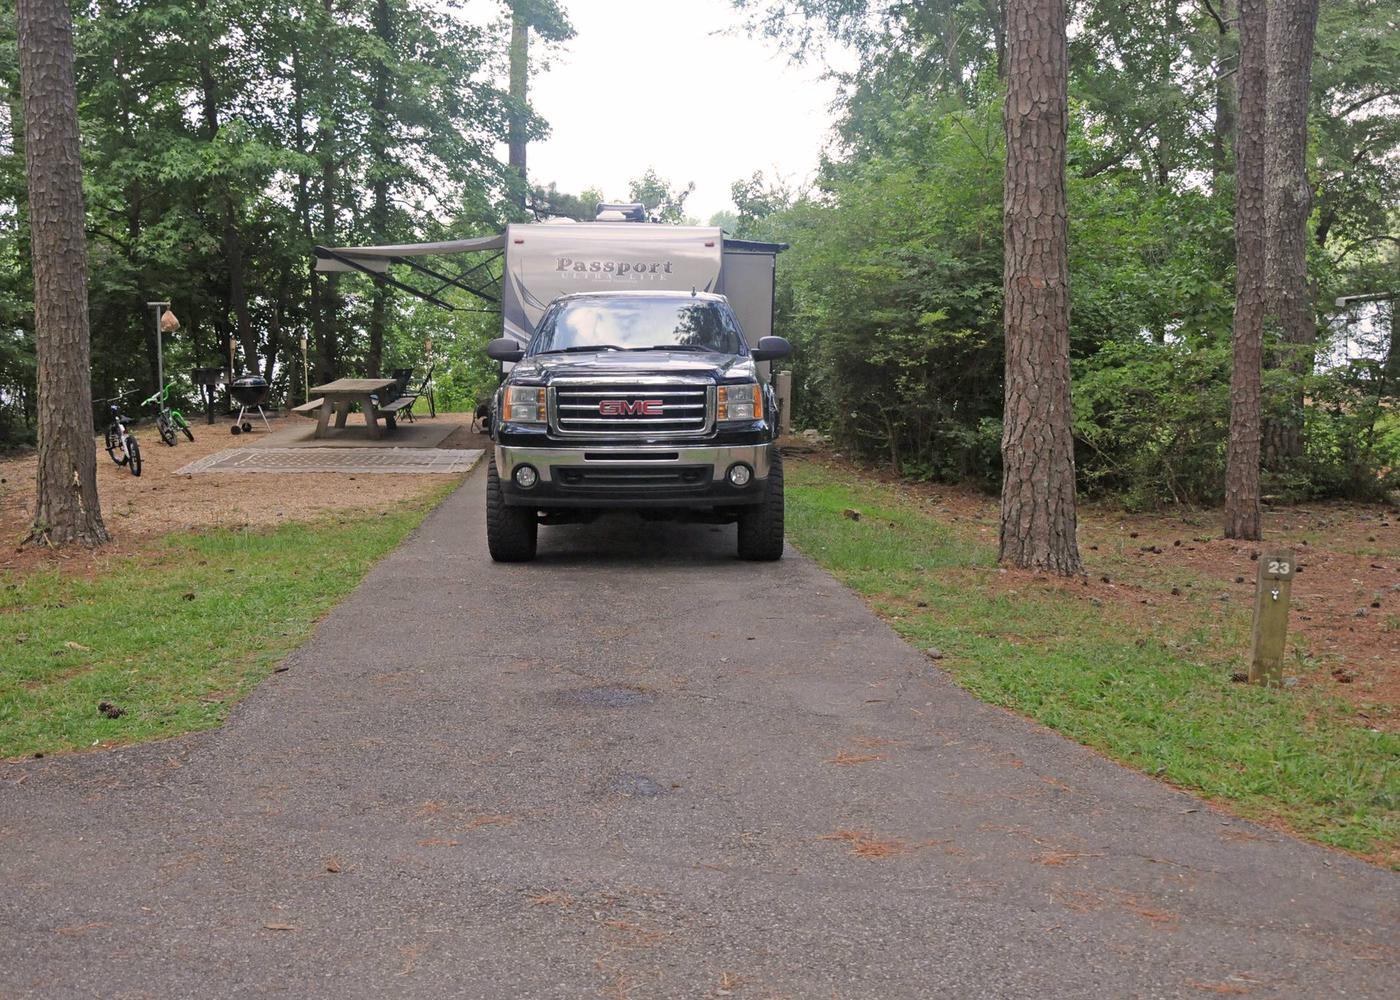 Driveway slope, awning-side clearance.Victoria Campground, campsite 23.